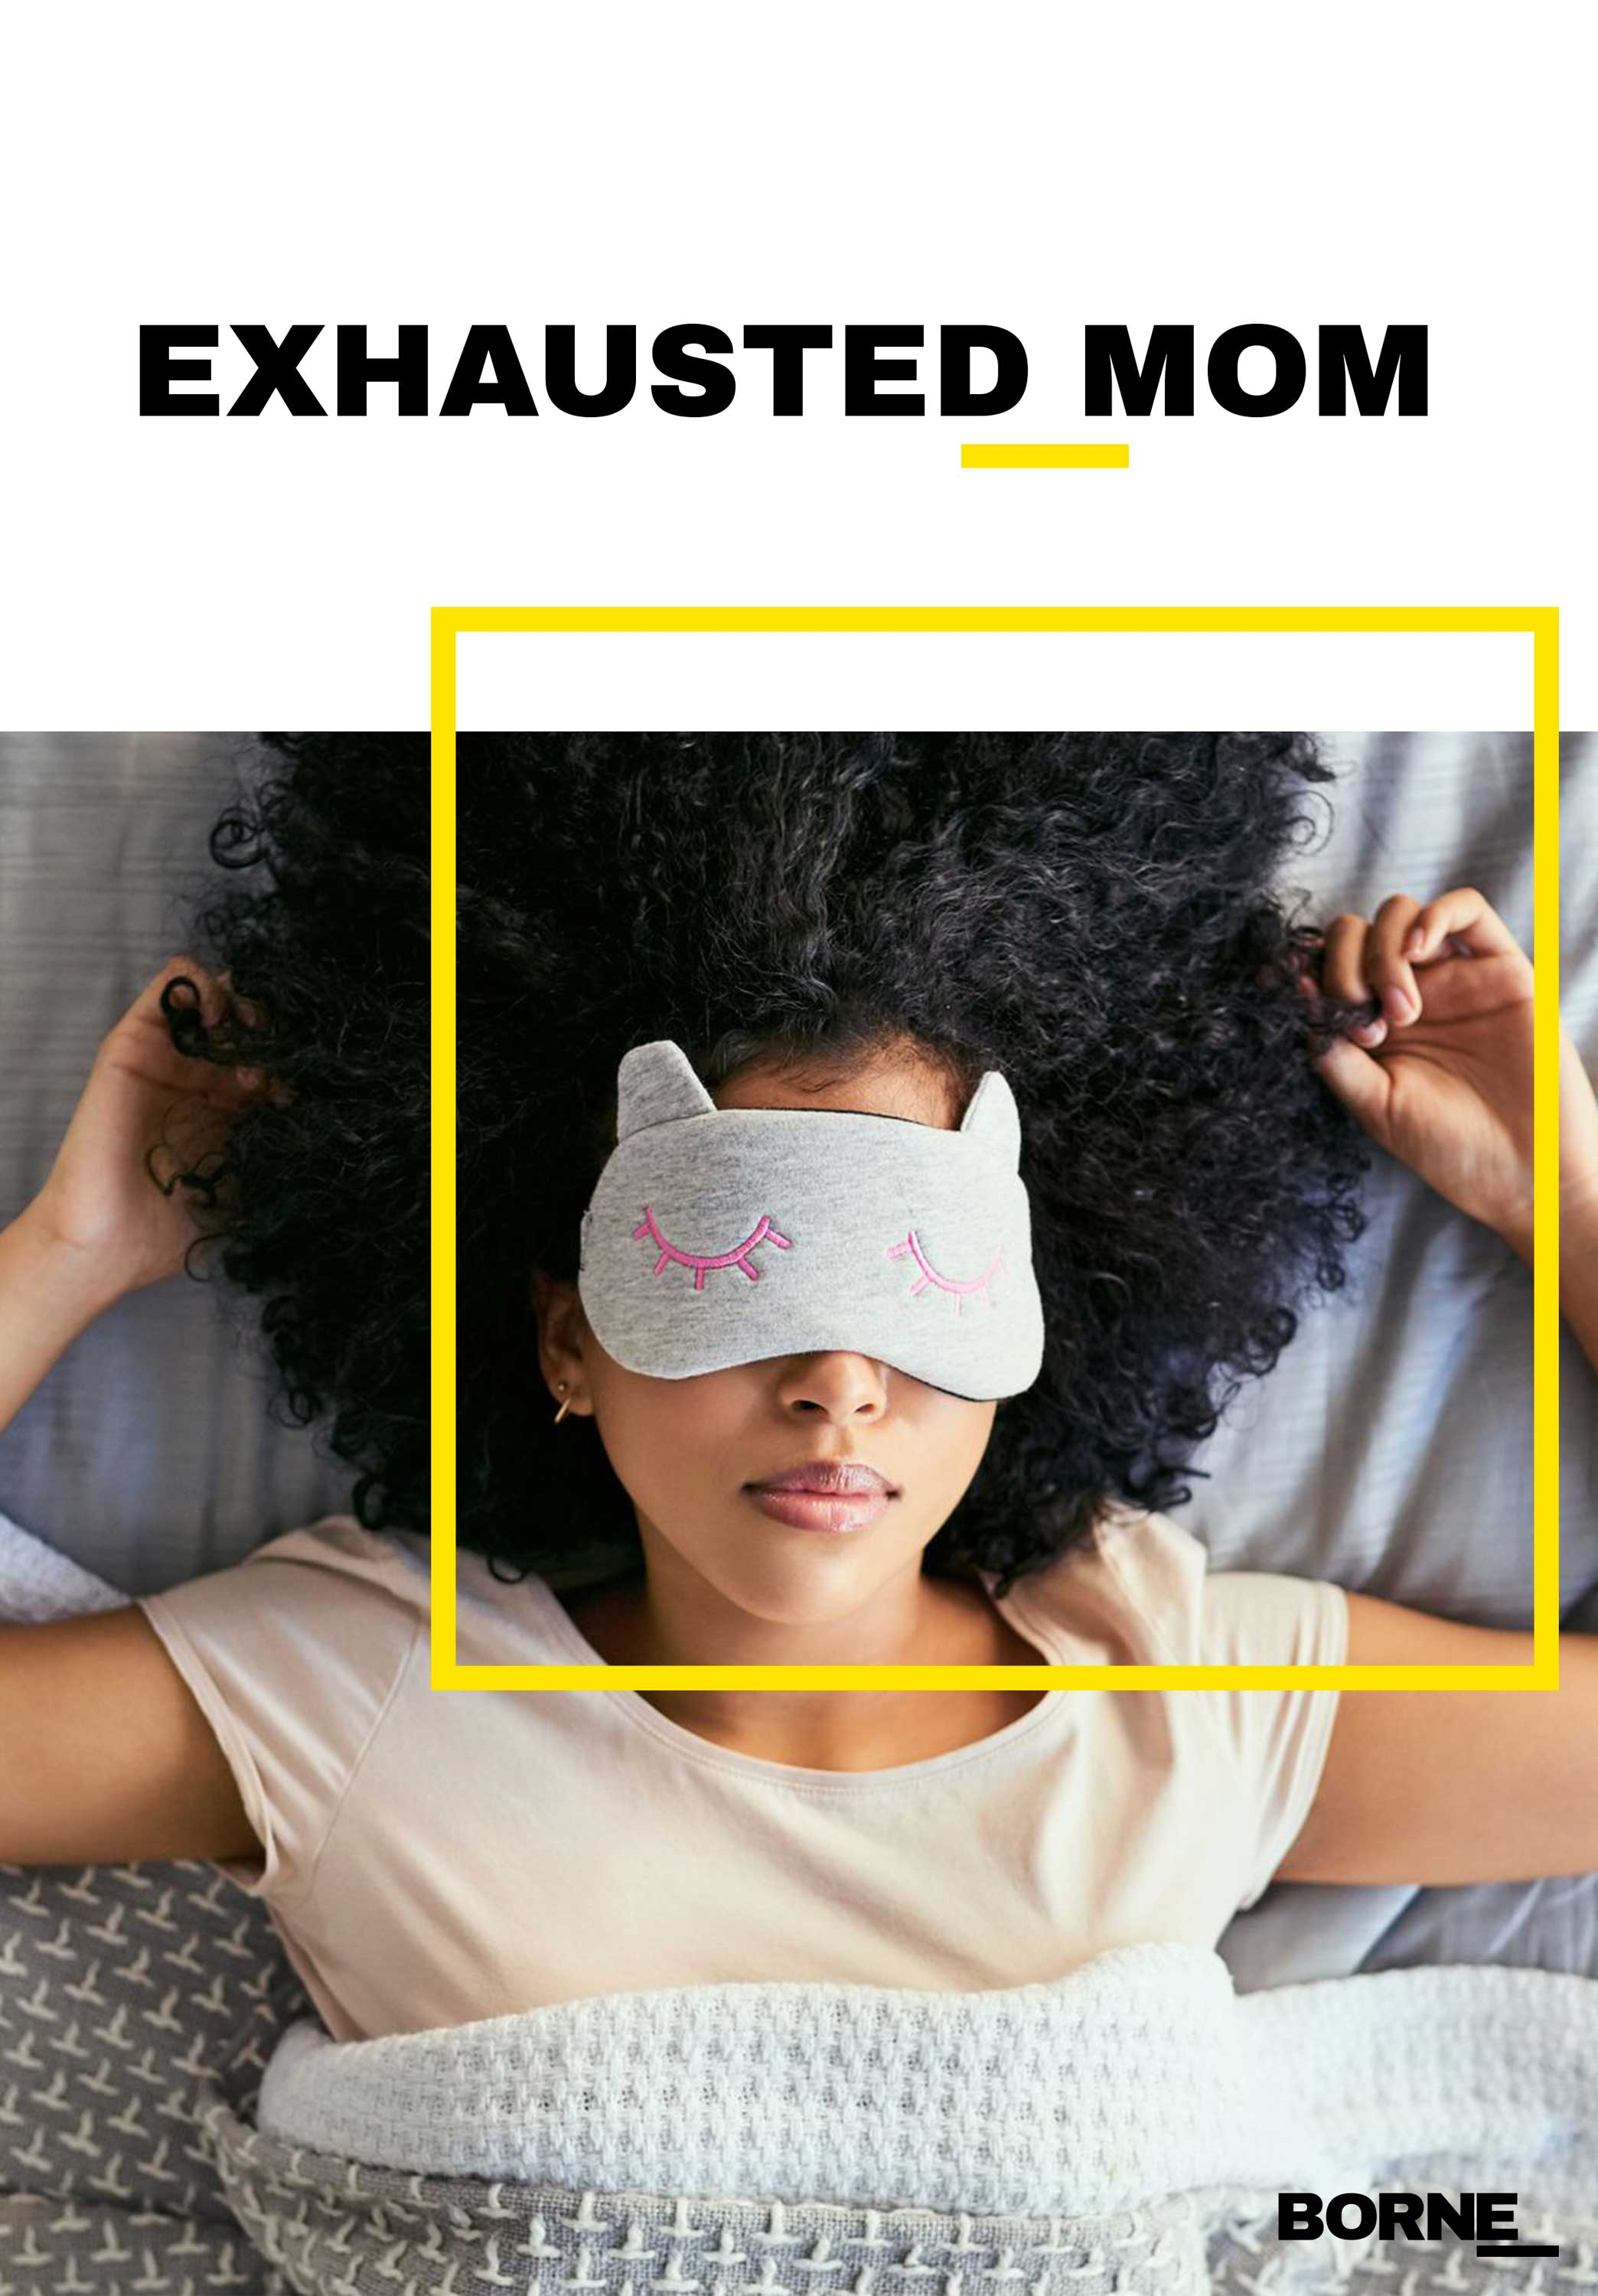 proposition-2-exhausted-mom-12070452